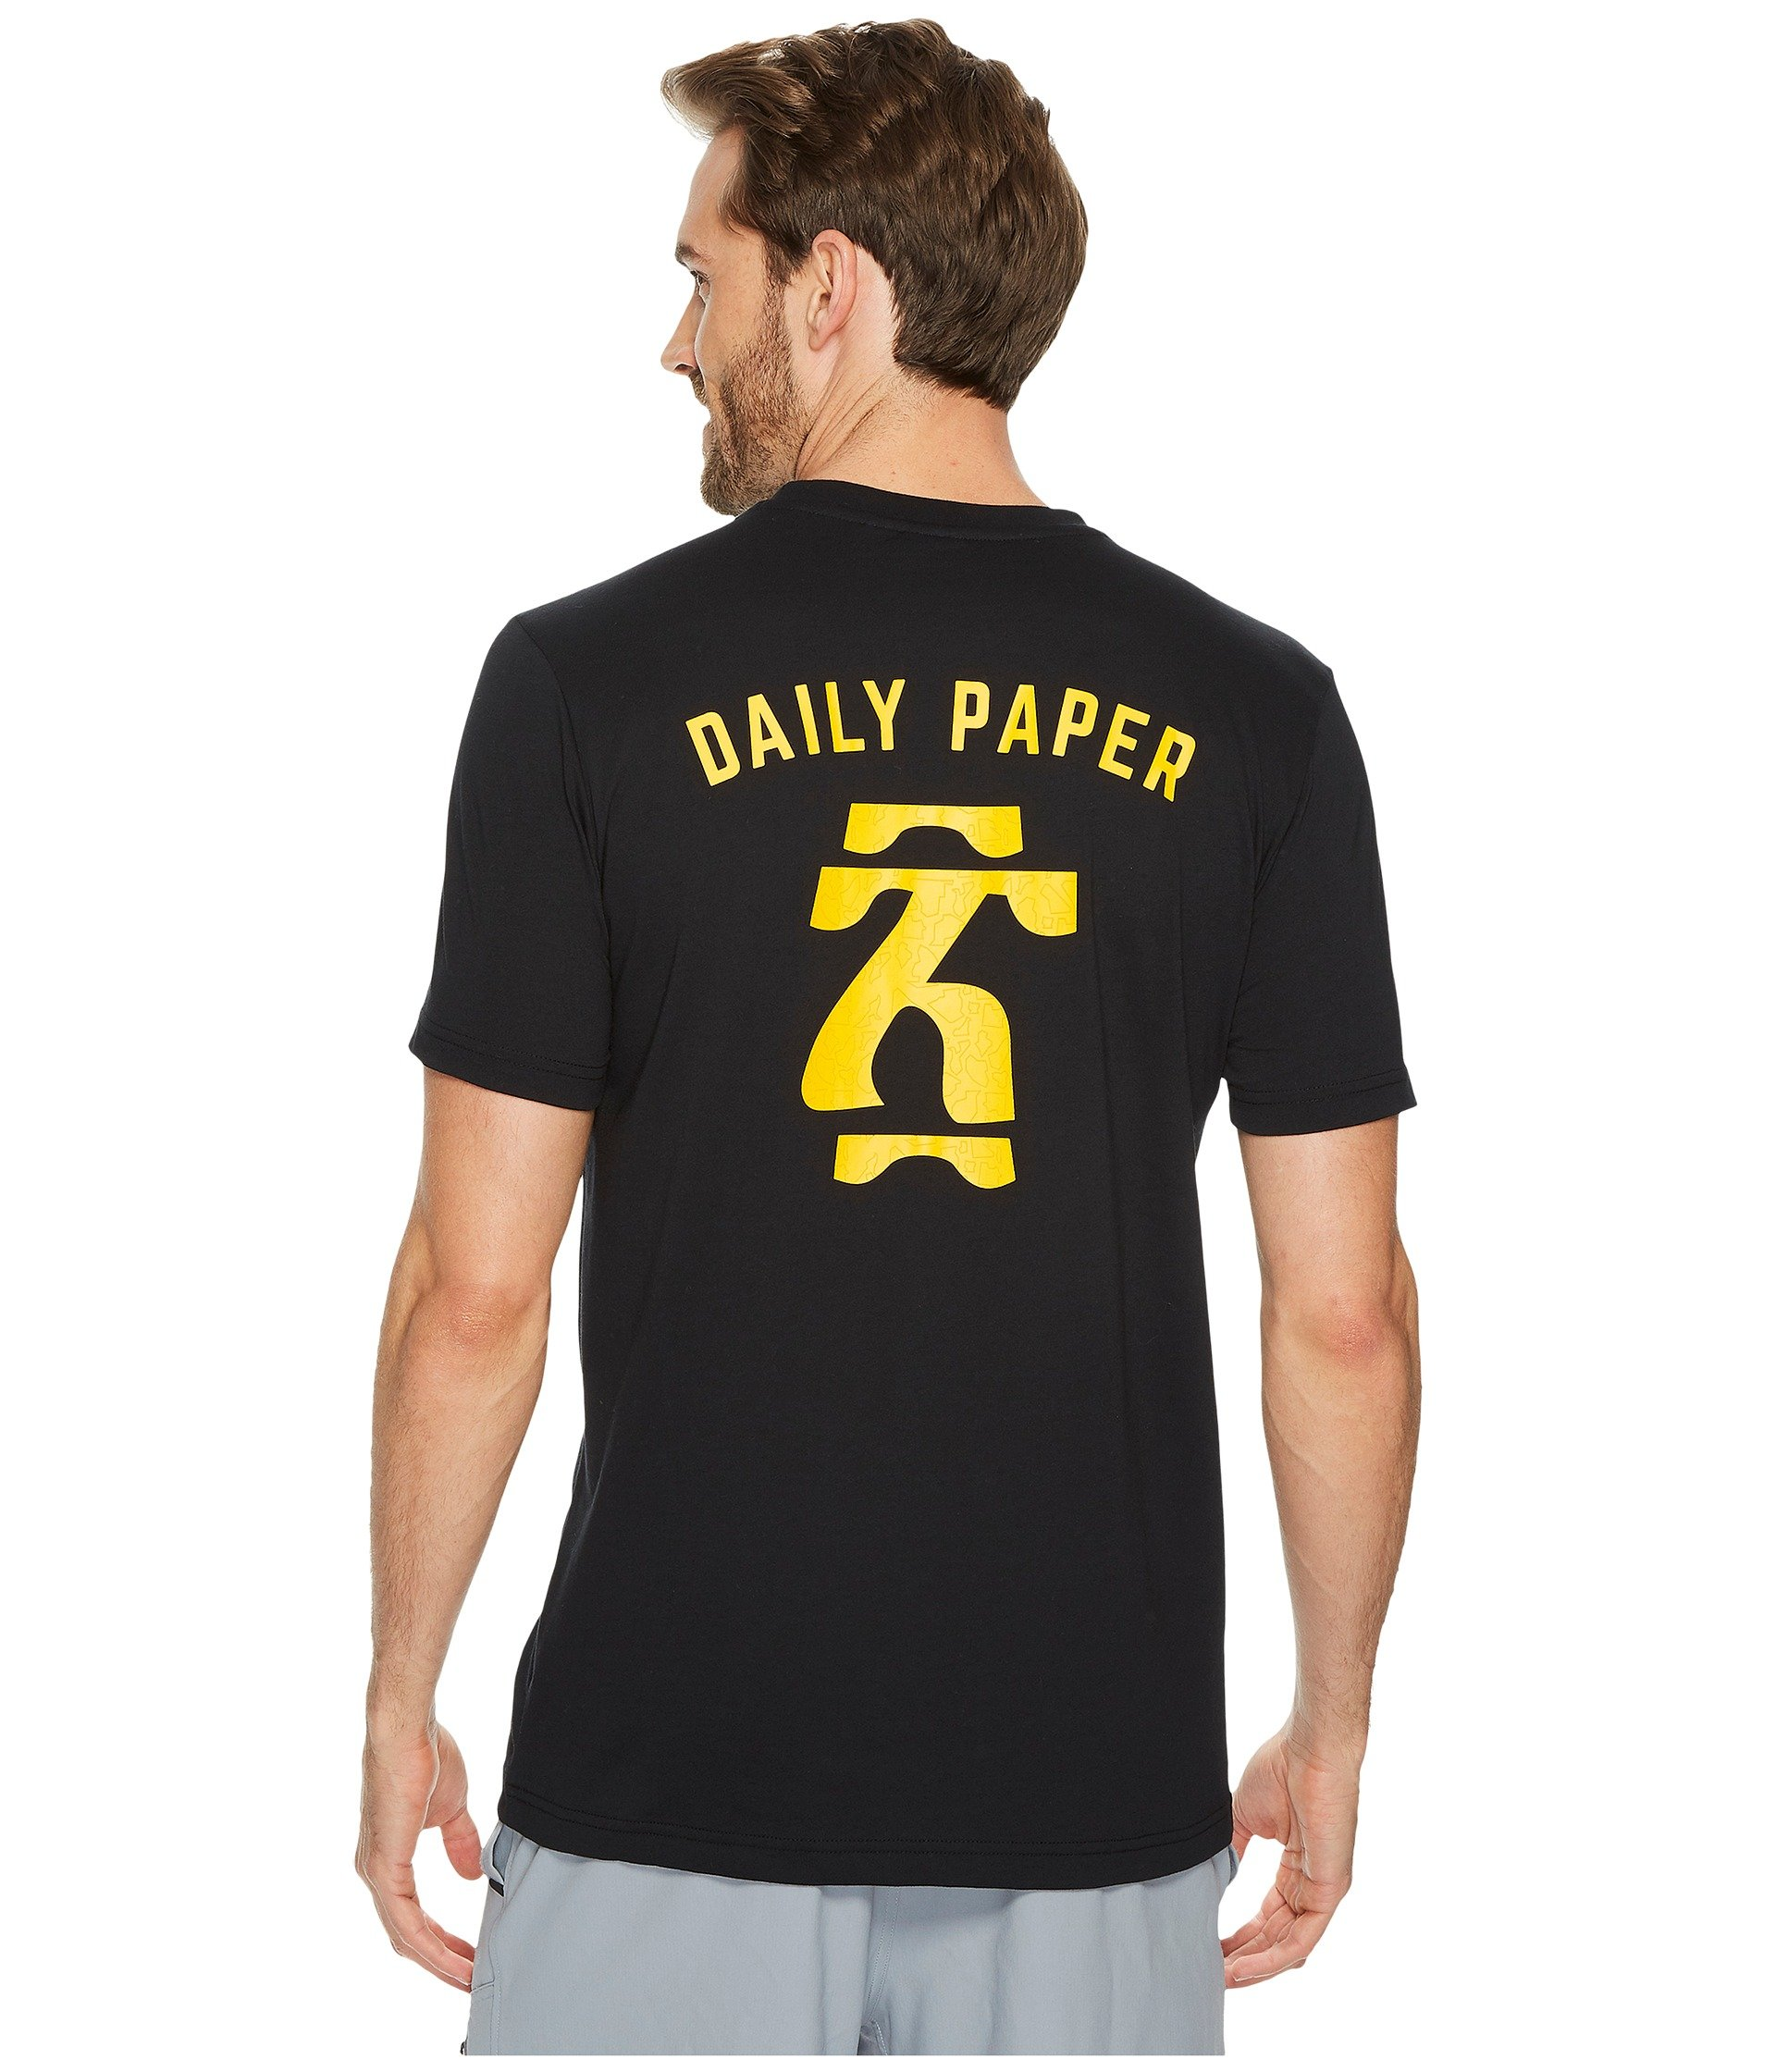 Daily Paper Tee